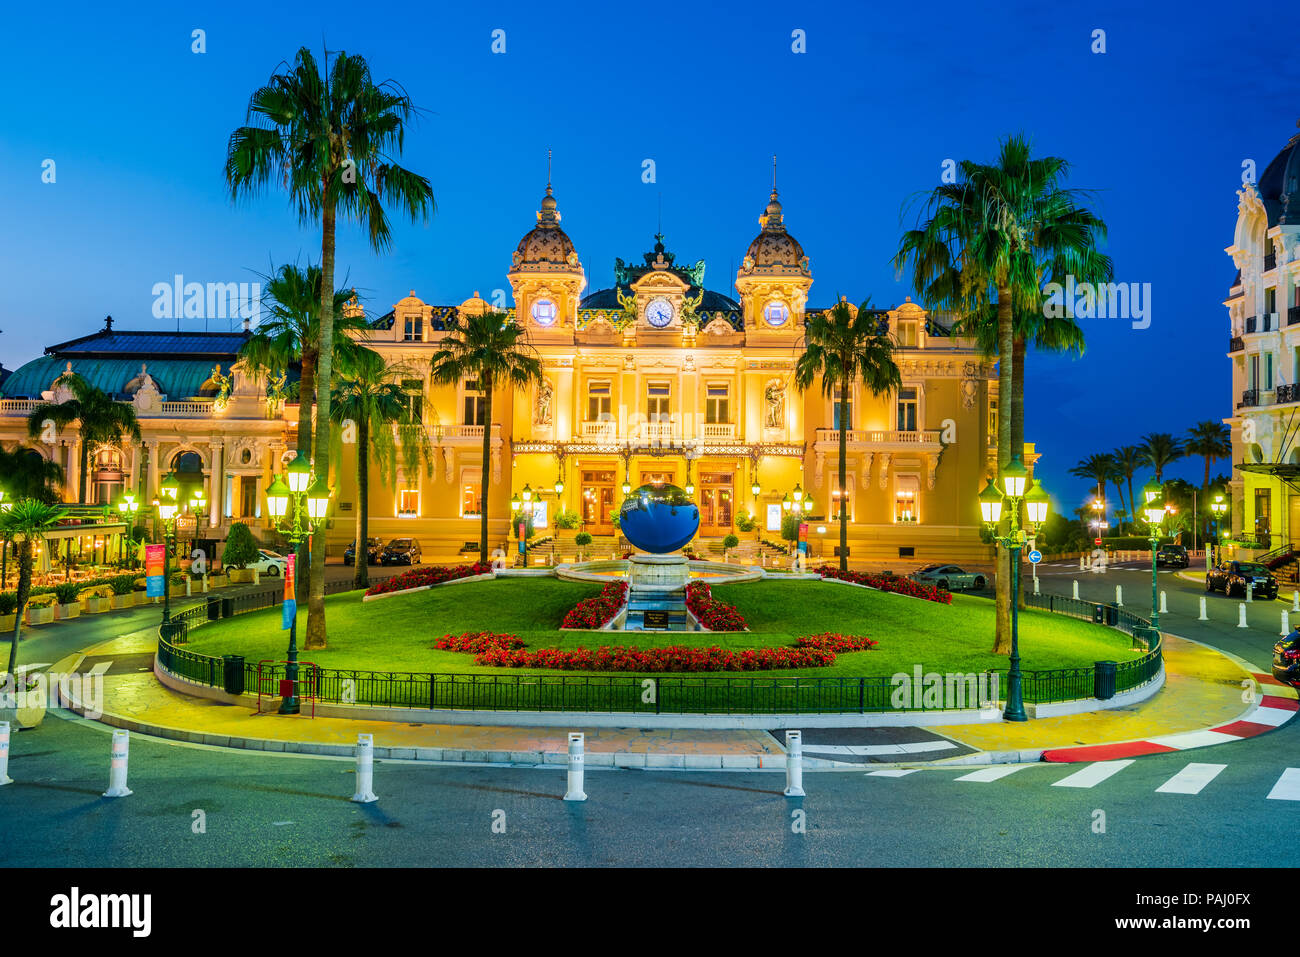 Casino monaco histoire casino tours houston